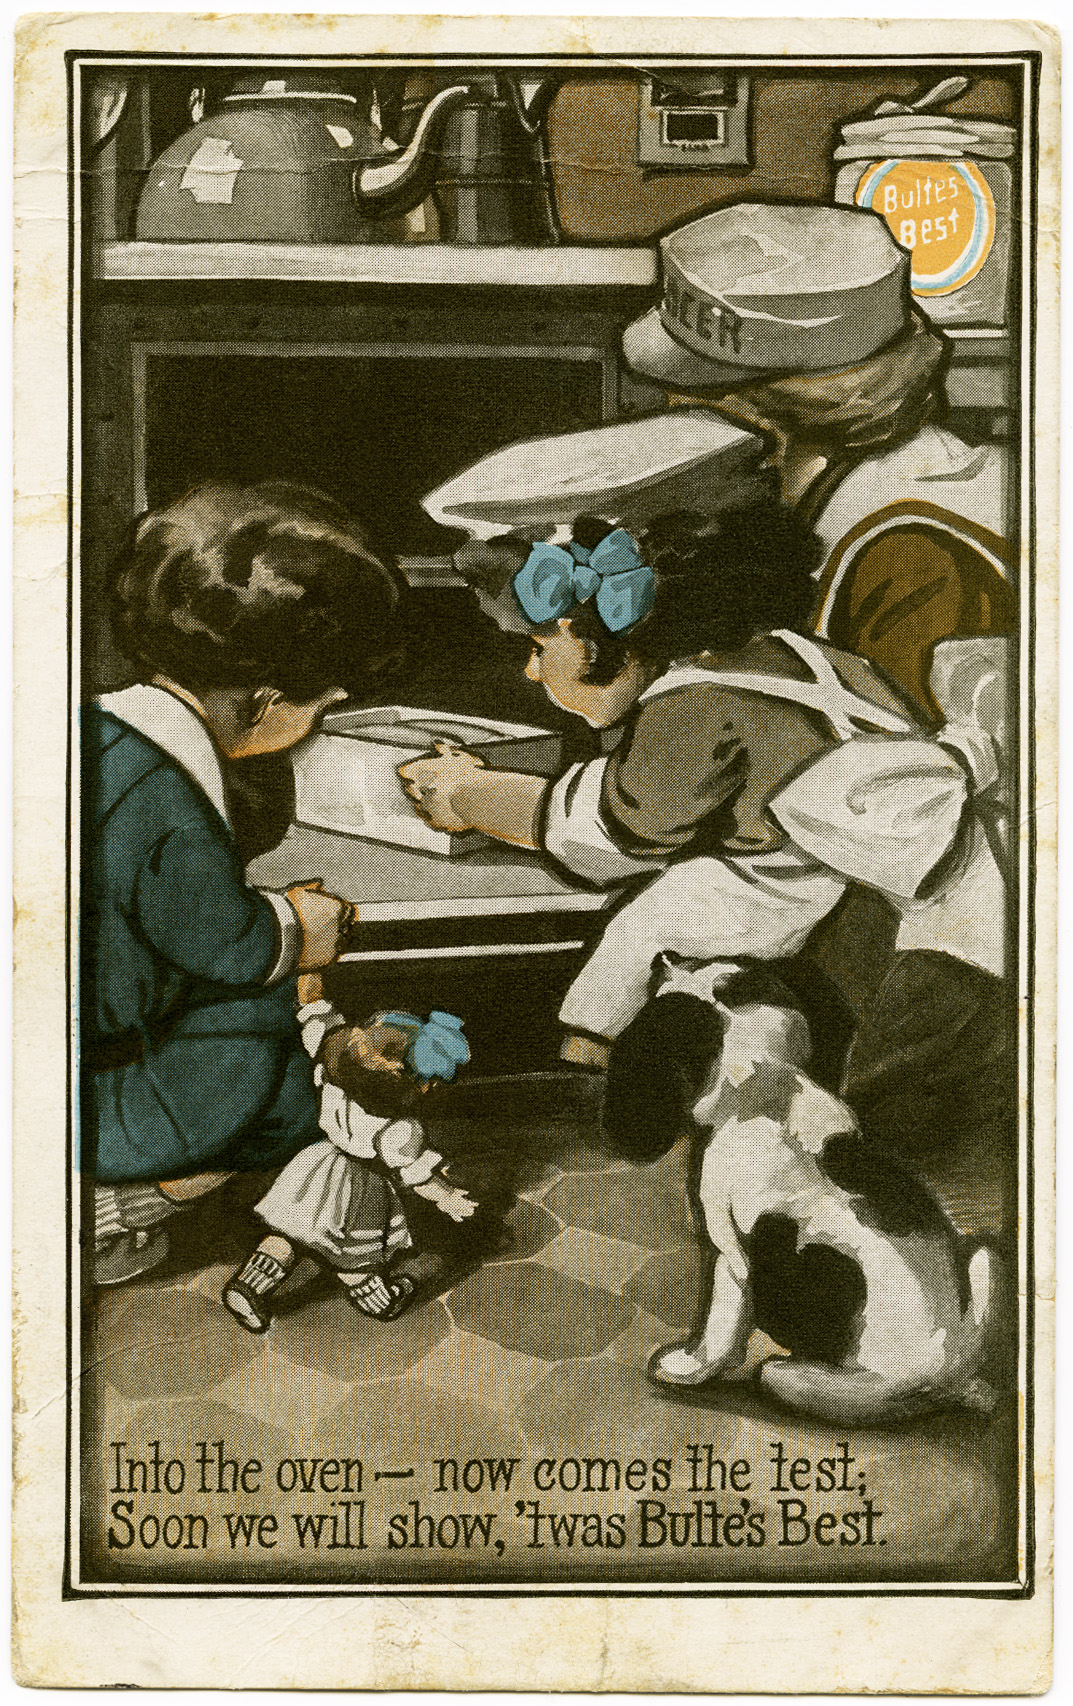 bulte's best flour, 1910 postcard, free vintage postcard, digital download graphics, free printable, antique postcard, kids in the kitchen, boy girl dog baking, children baking, free printable, free victorian clipart, royalty free illustration, public domain graphics, old design shop